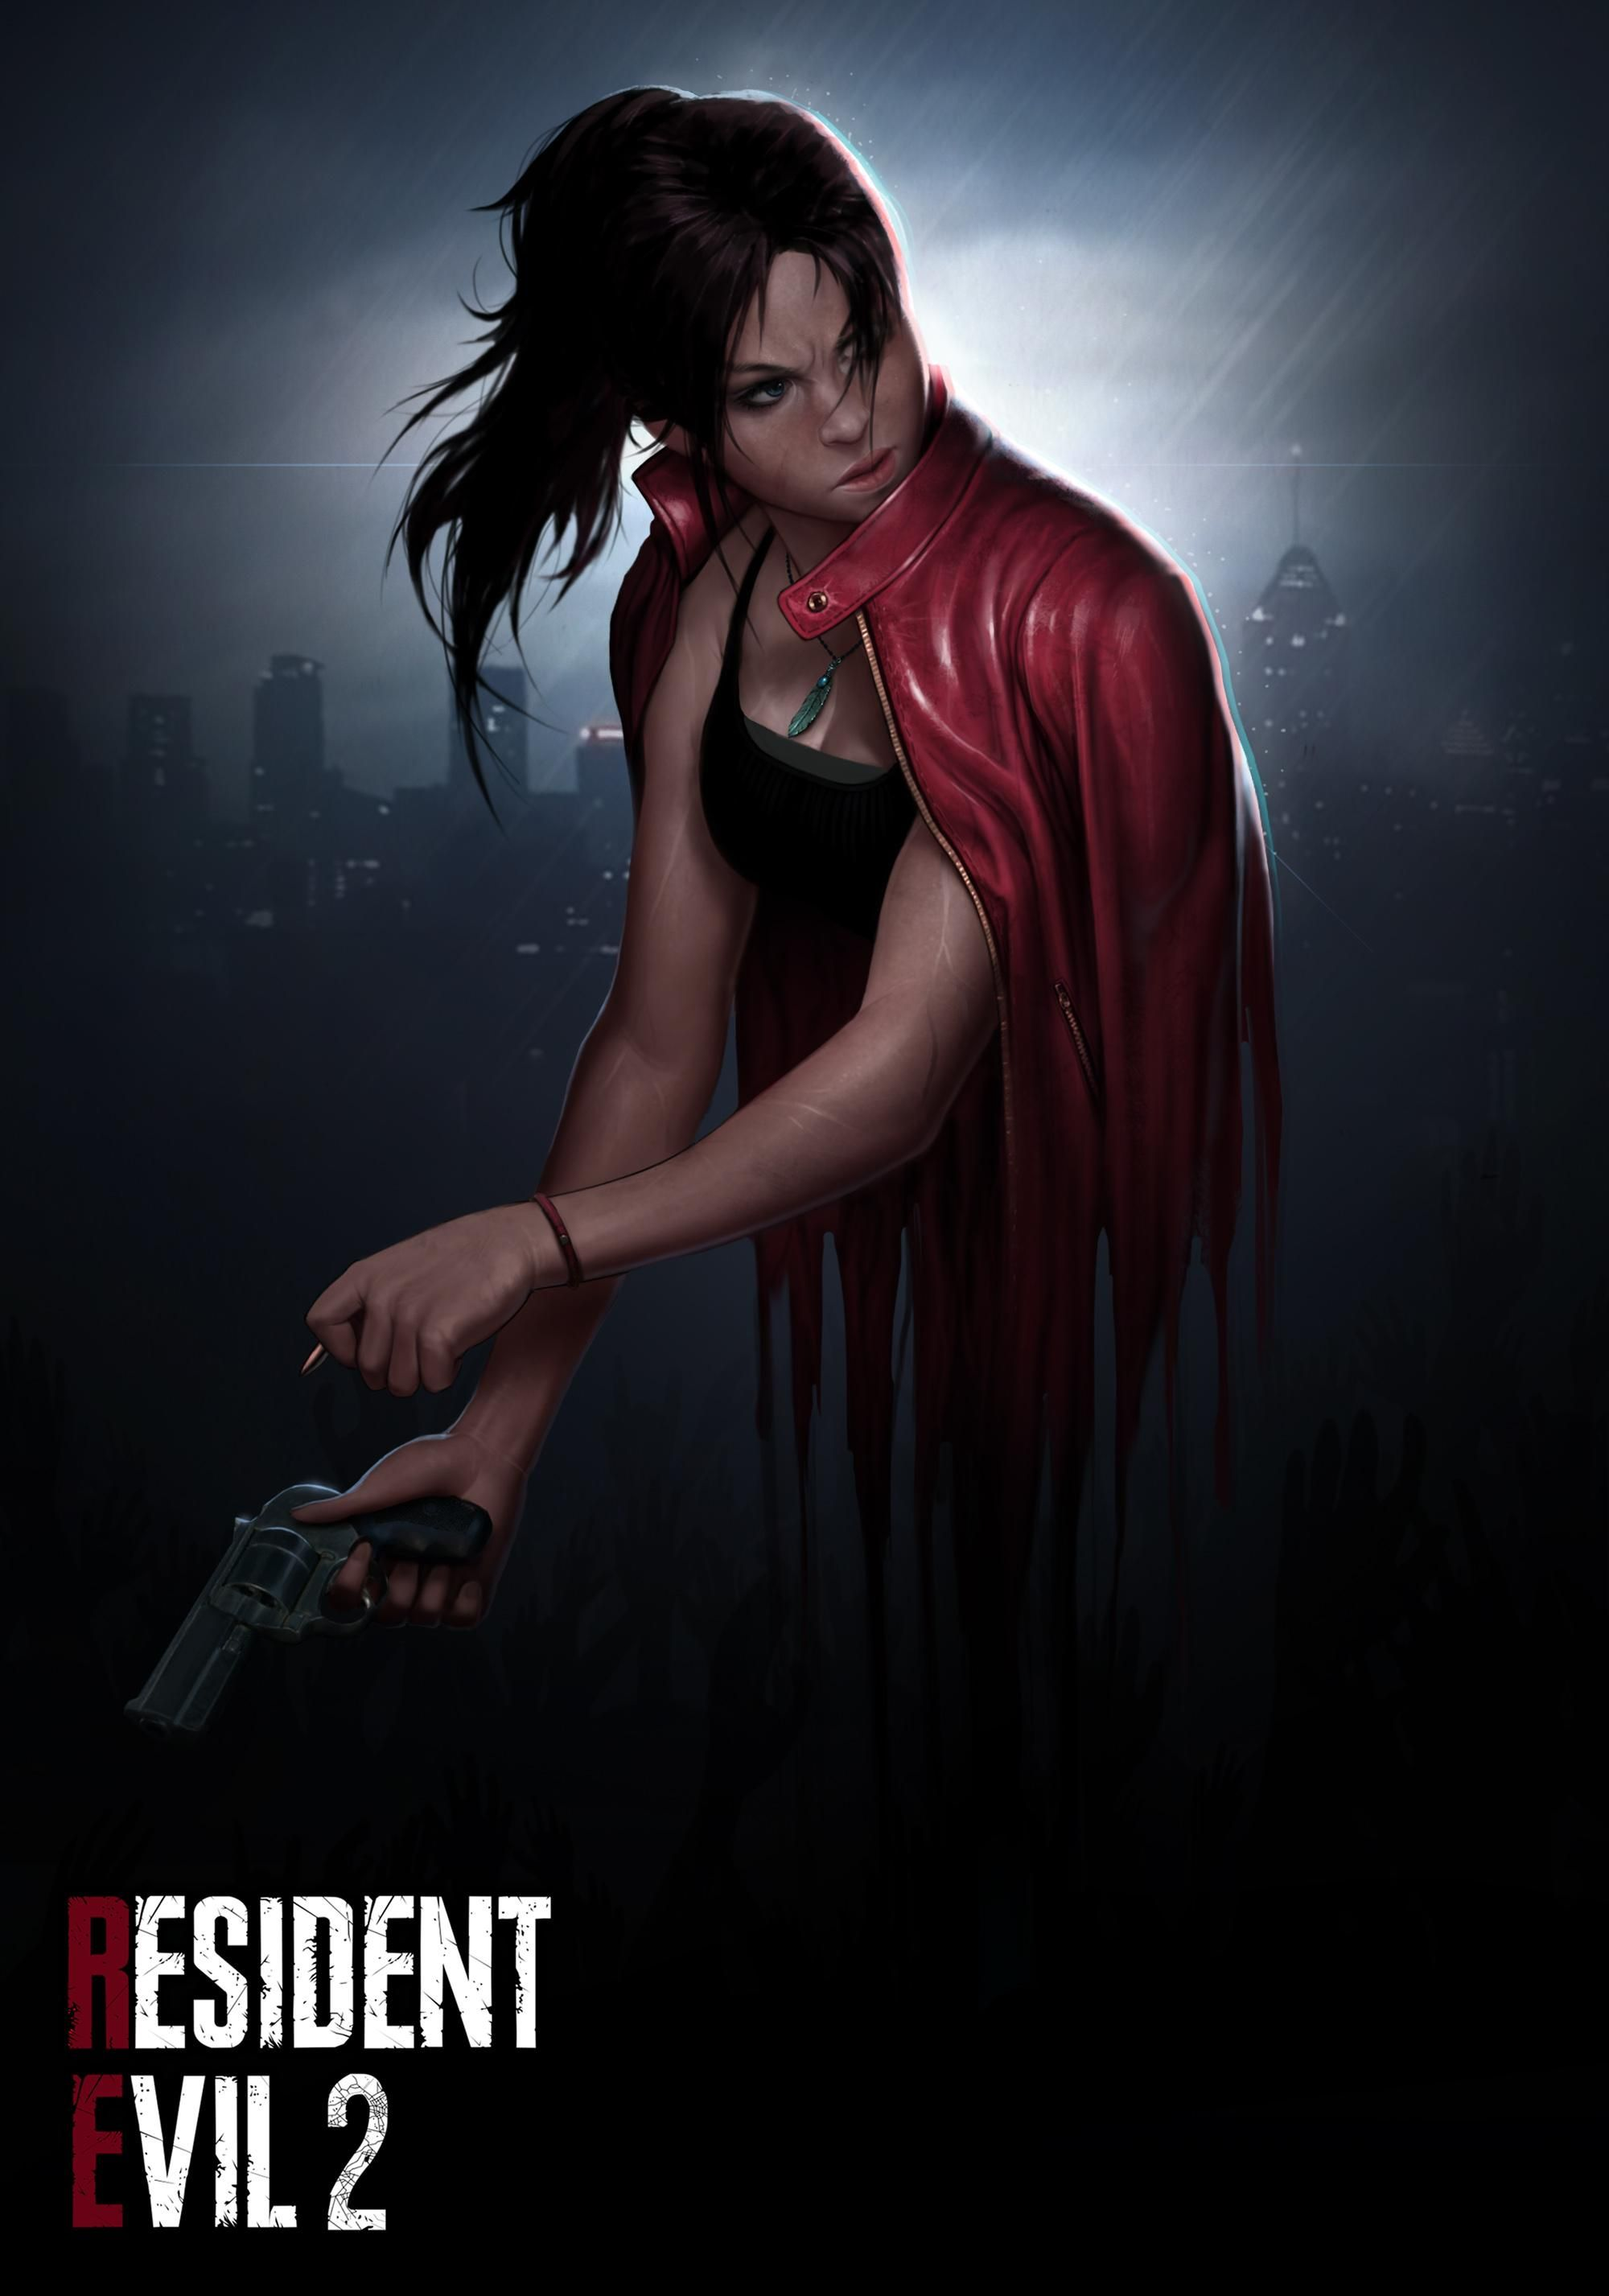 Claire Redfield Resident Evil 2 Tribute Fanart By Me Resident Evil Girl Resident Evil Resident Evil Game